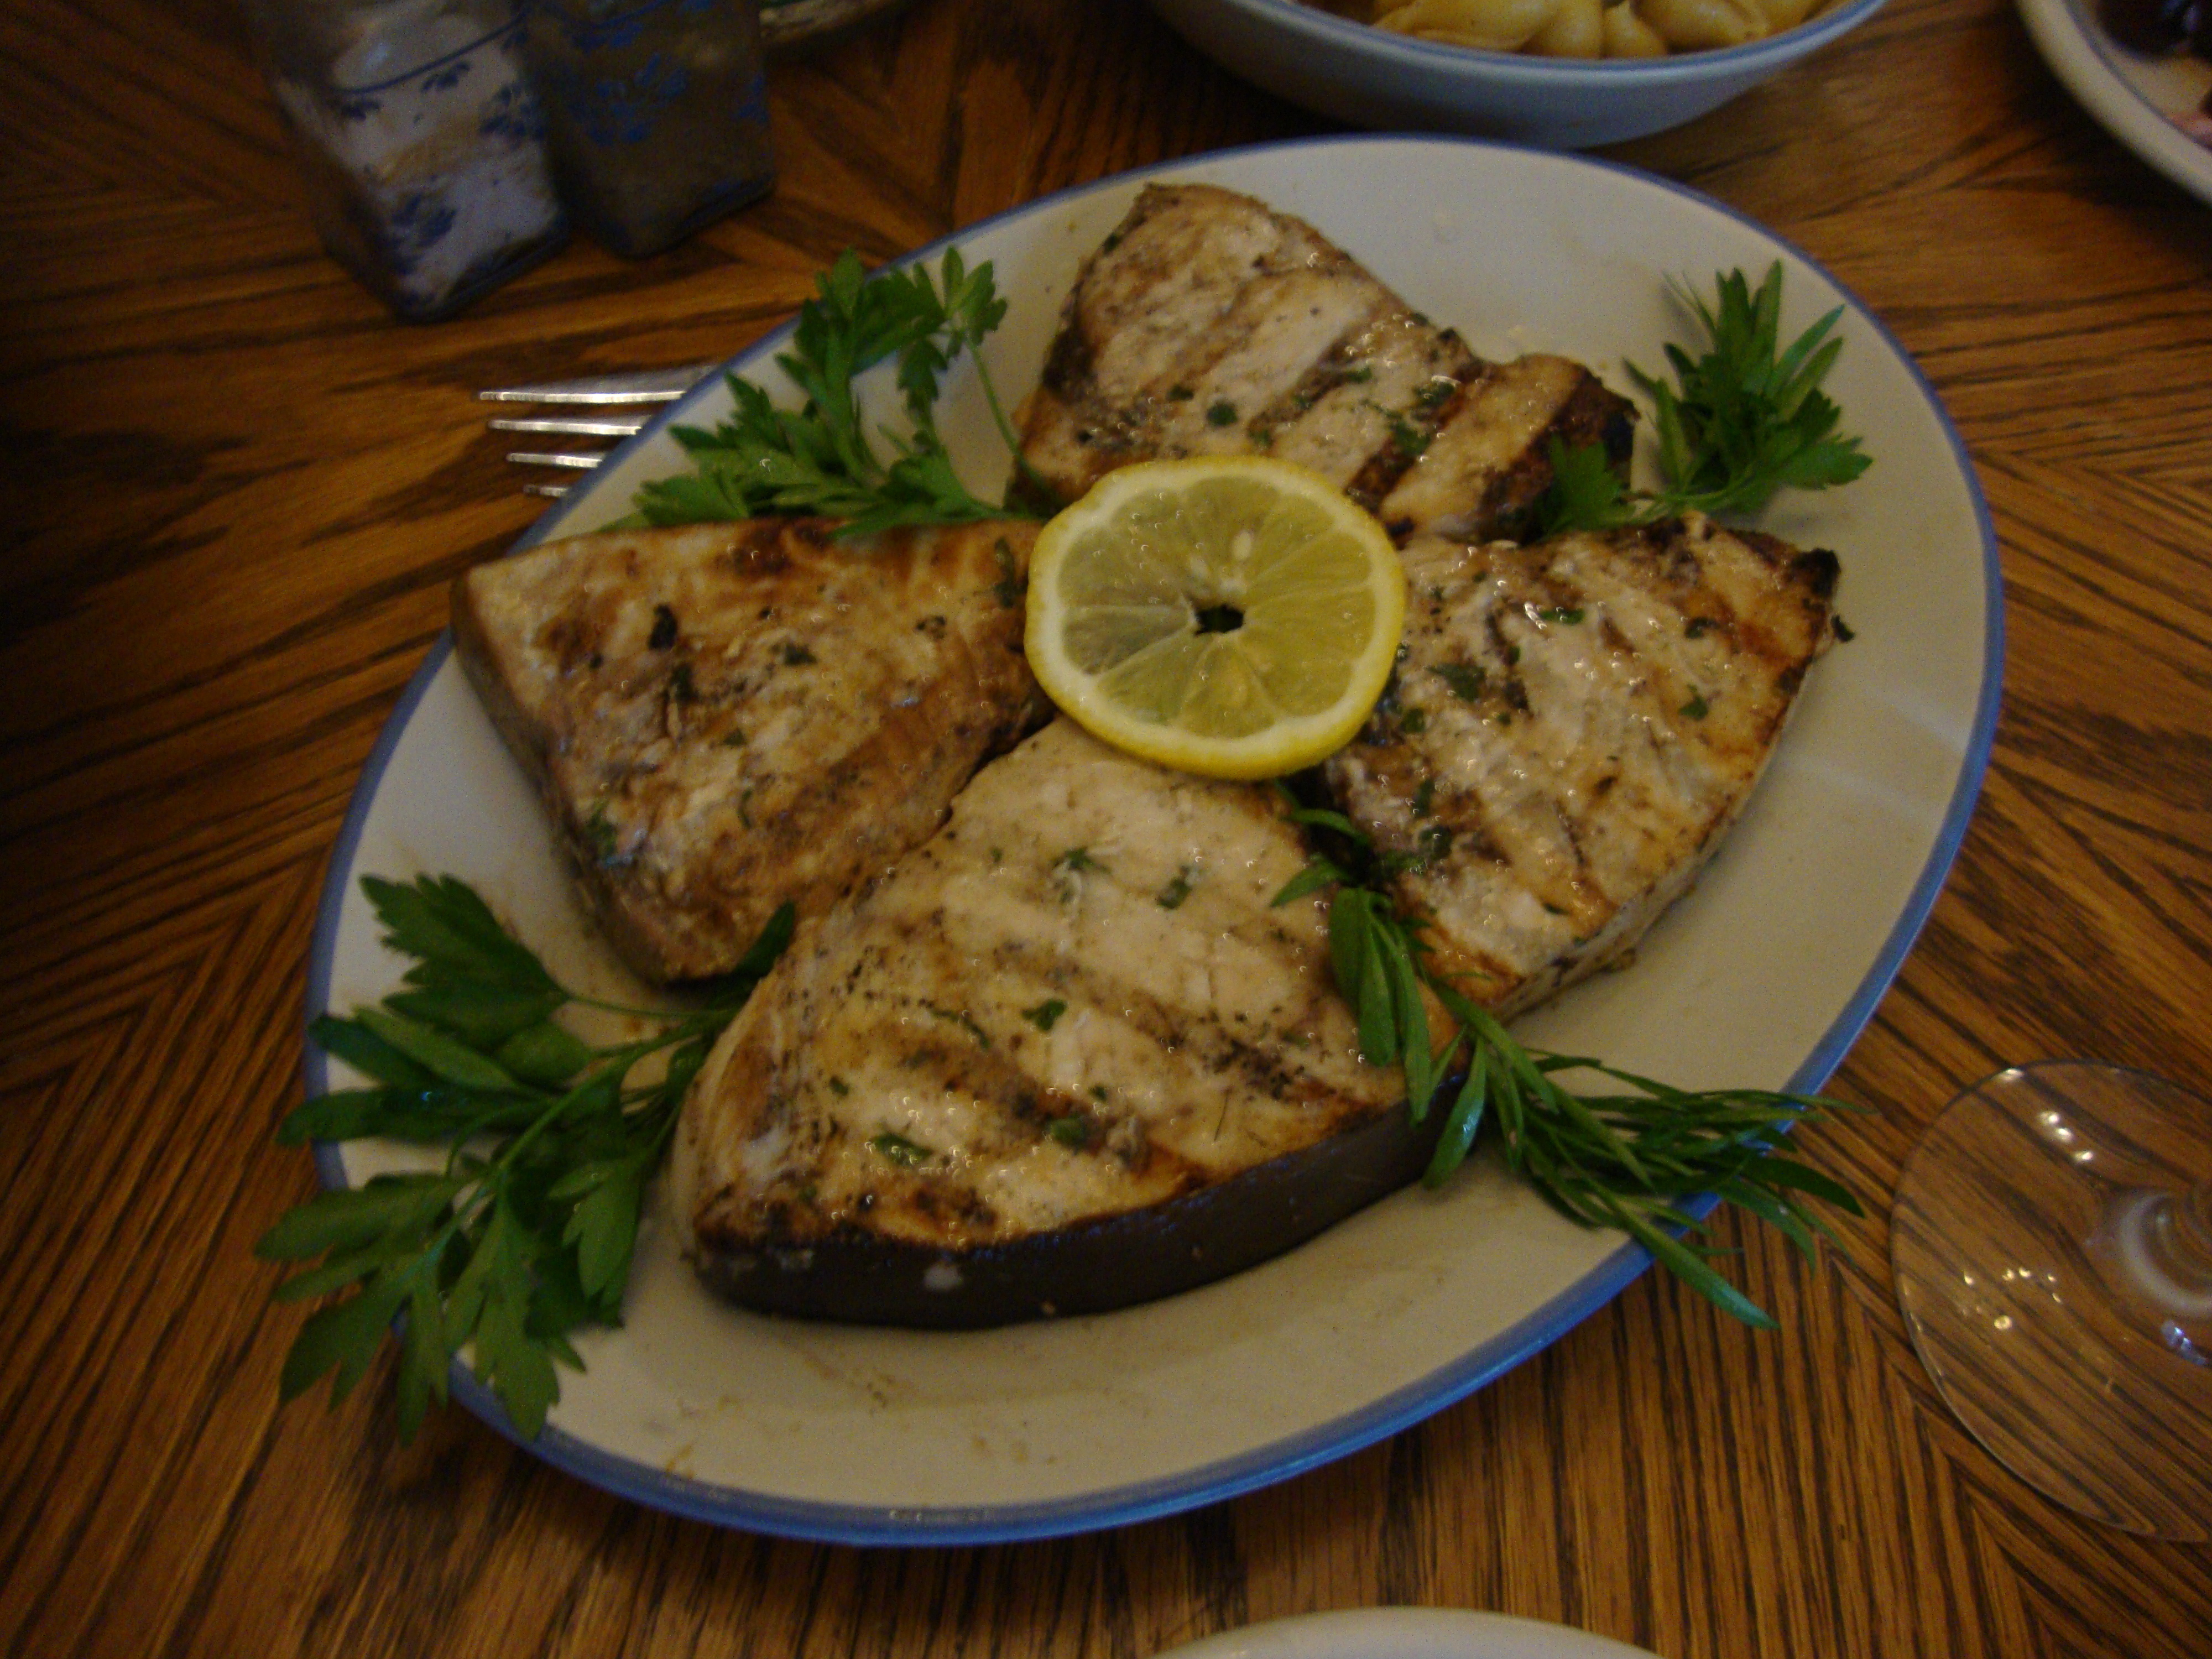 The Main Dish: Swordfish